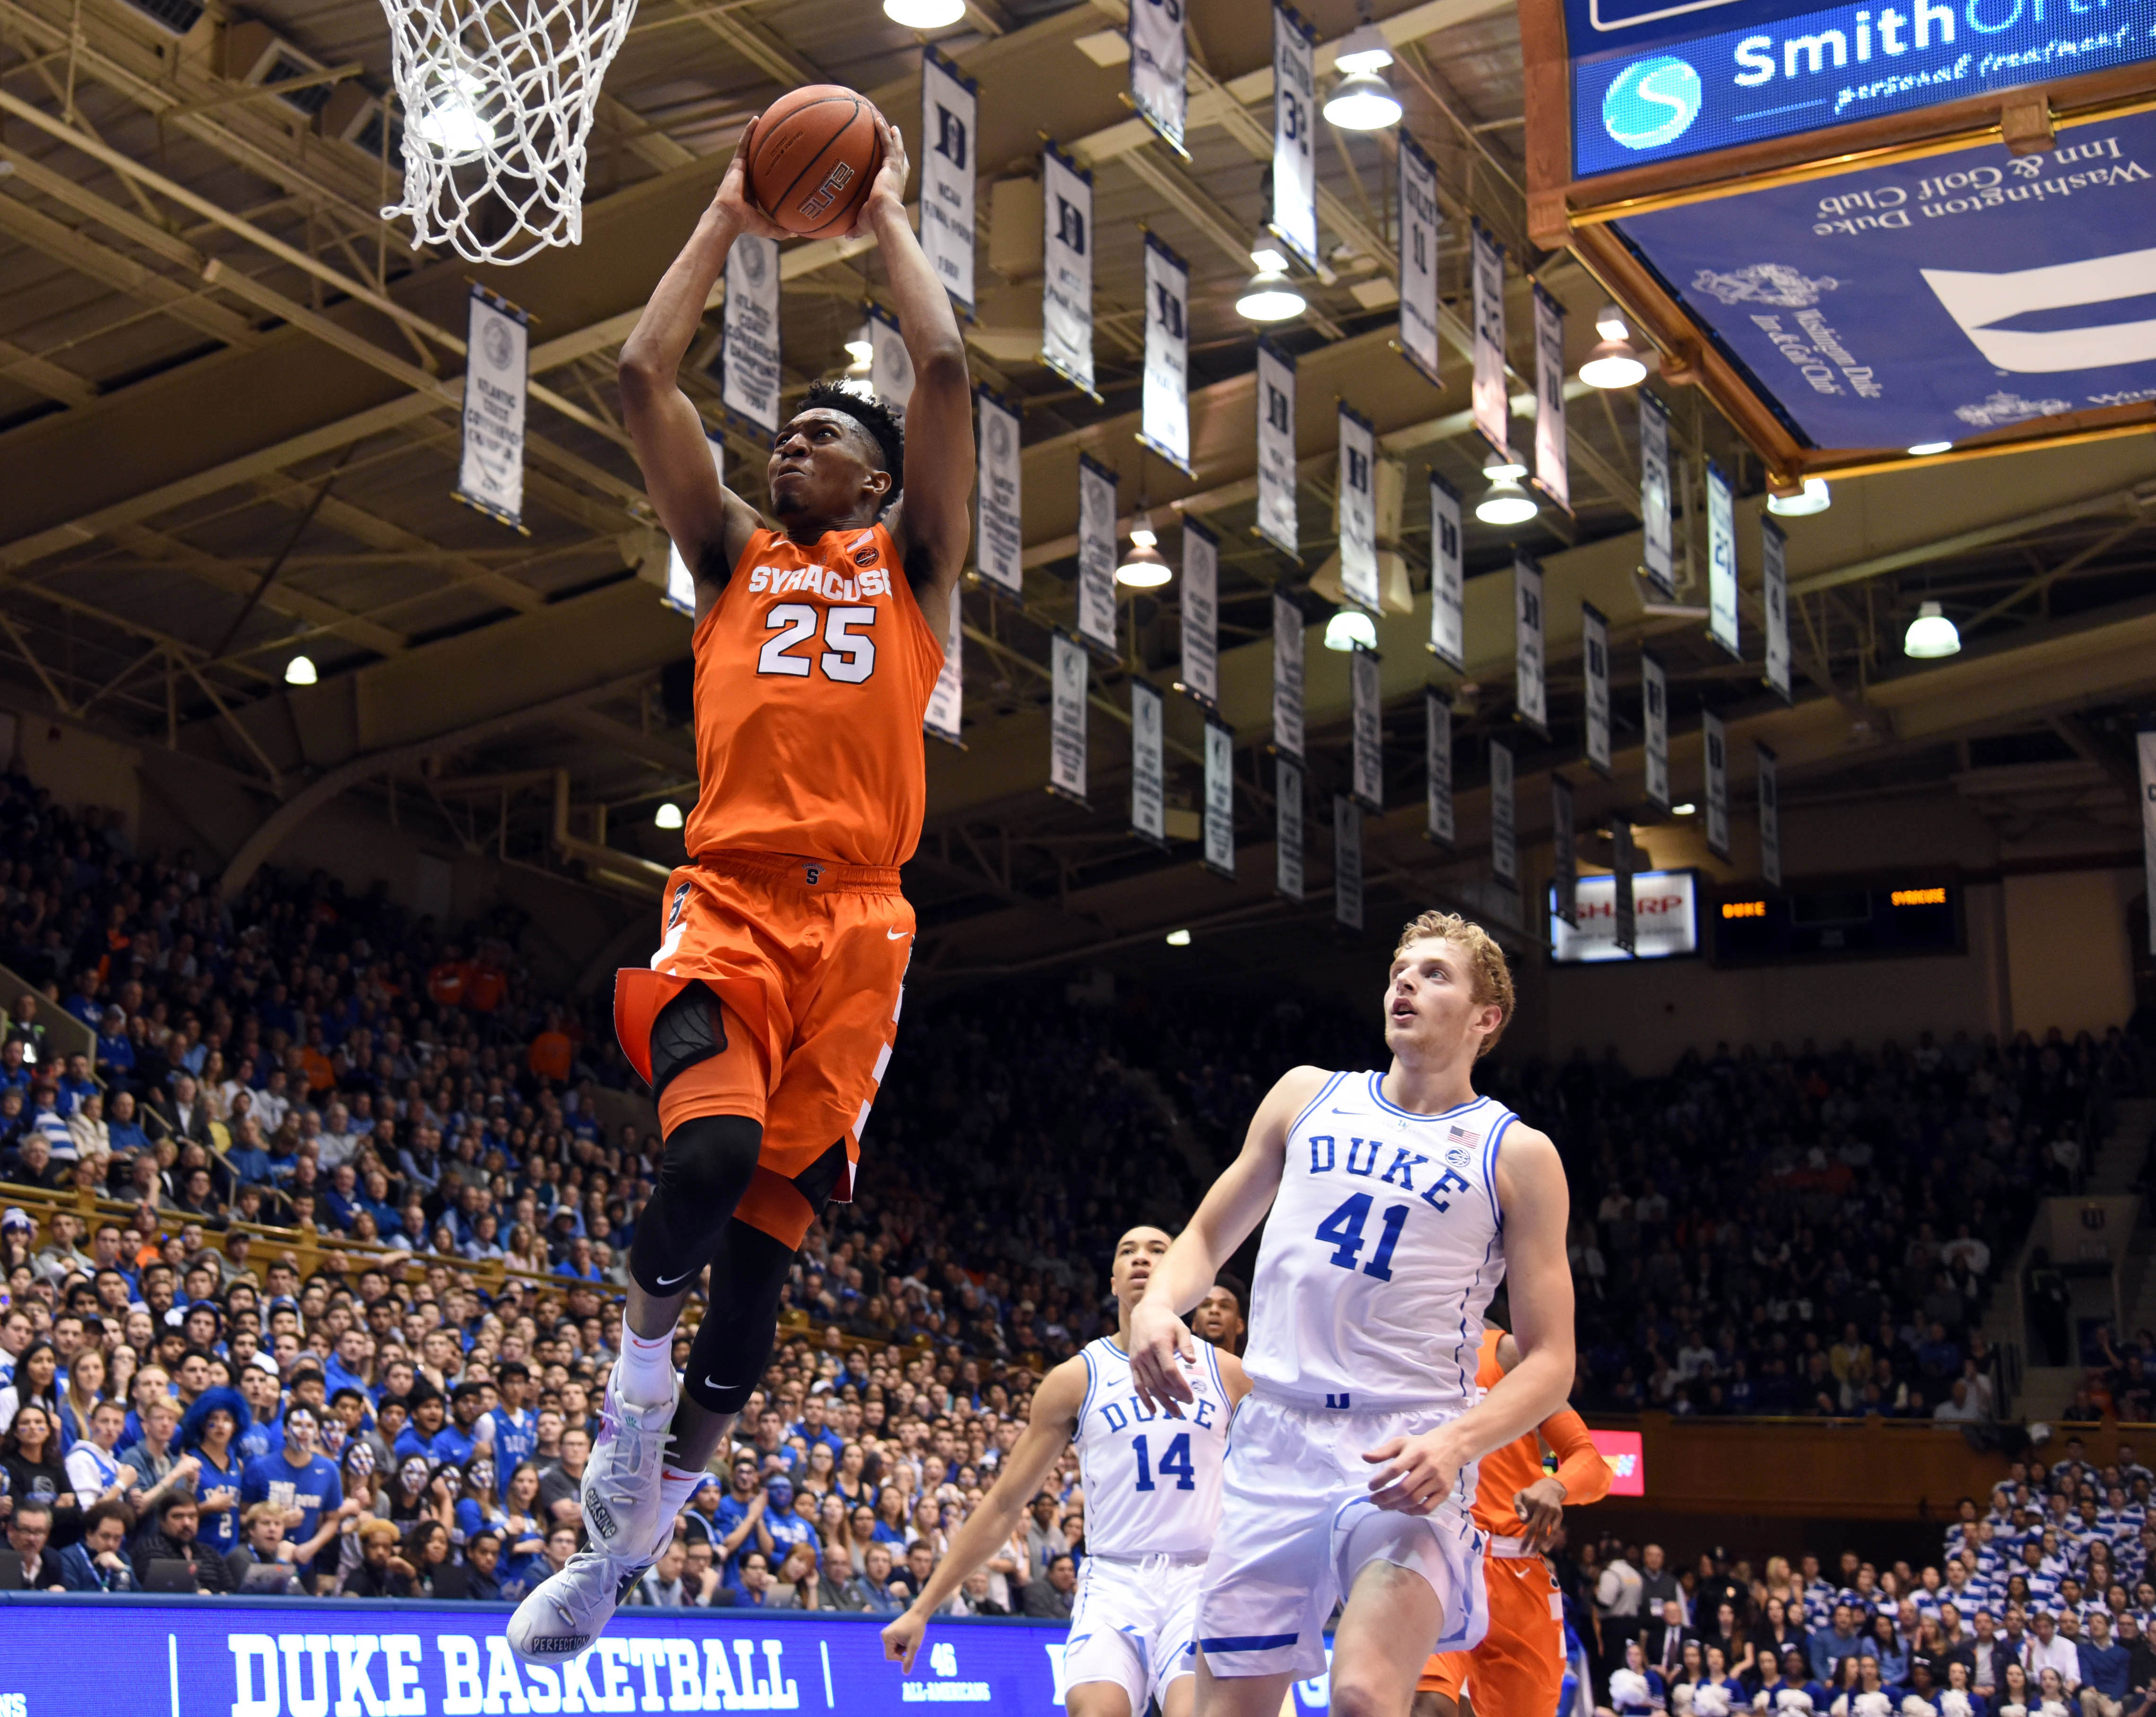 f6e84429046a Syracuse didn t panic in overtime win against Duke in Cameron